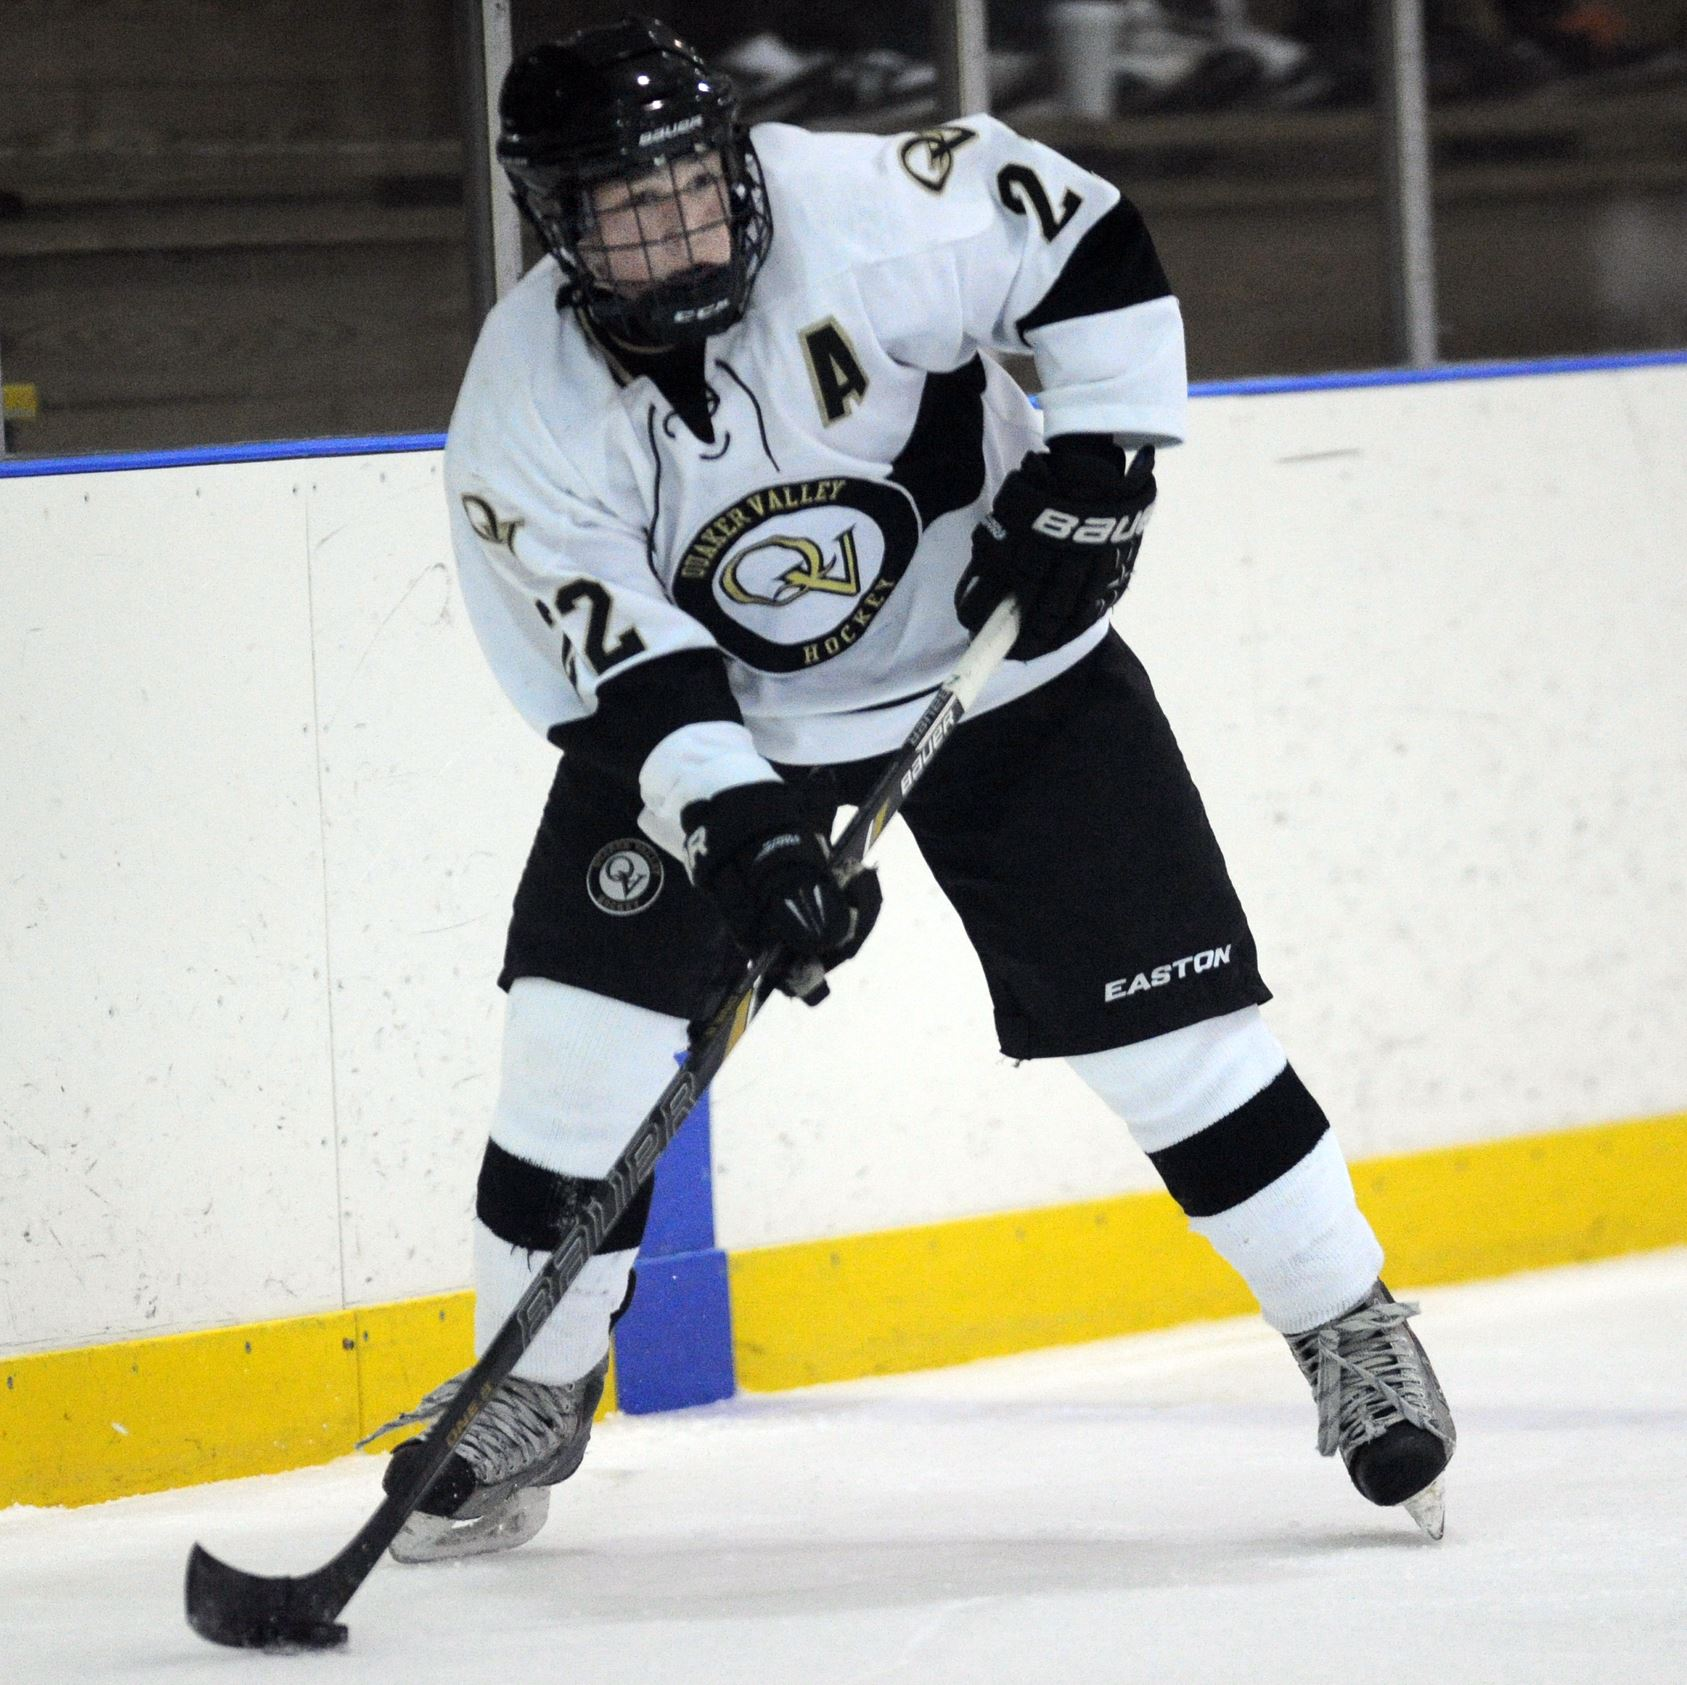 North/West Xtra: Quaker Valley's Perkins Can Score